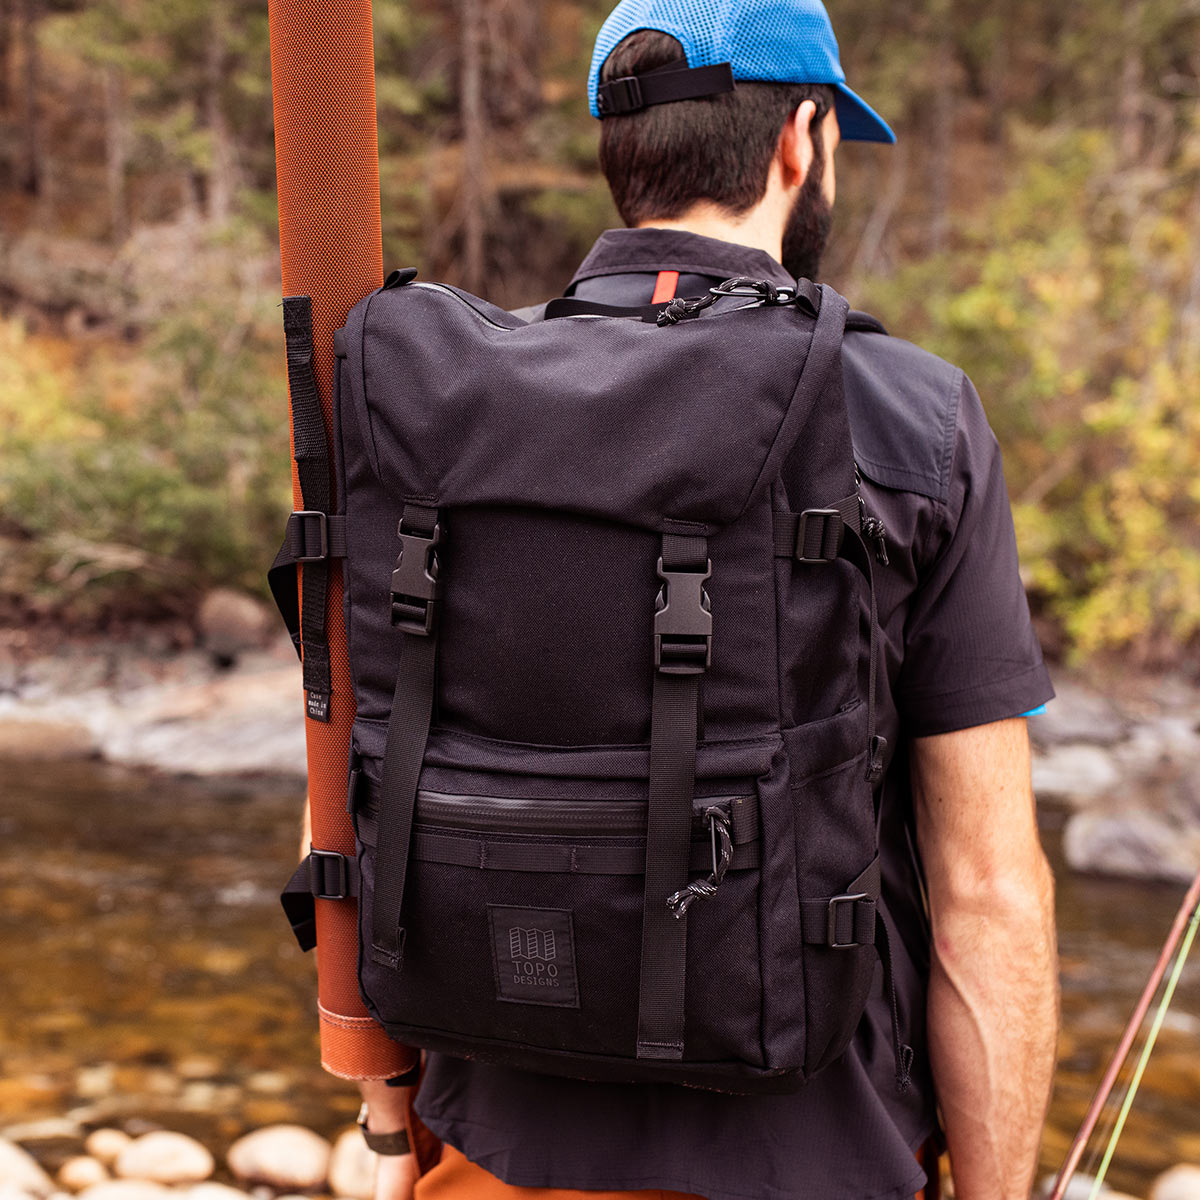 Topo Designs Rover Pack Tech Navy, durable, lightweight and water-resistant pack for daily use